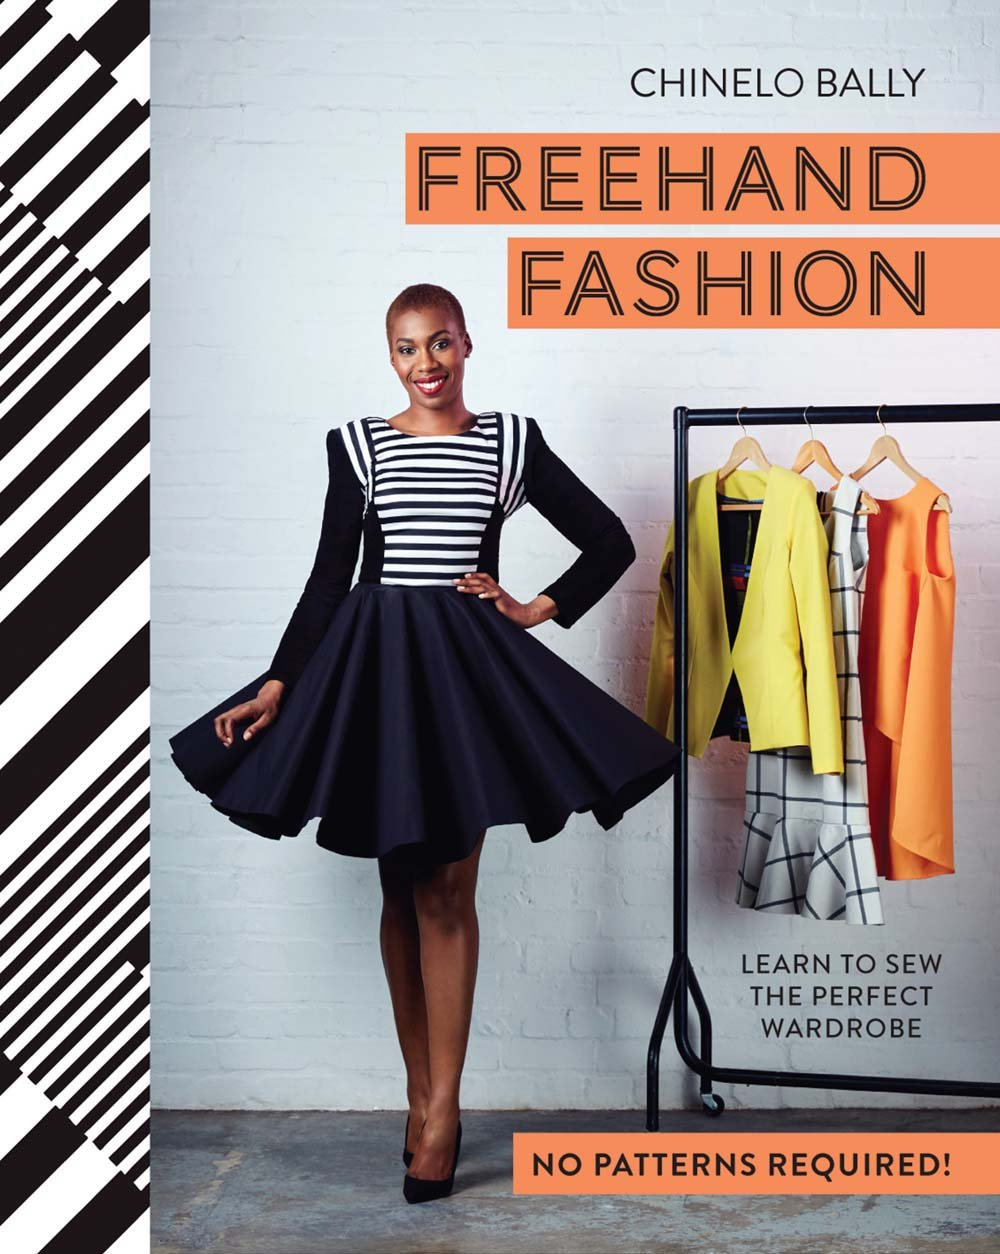 Amazon freehand fashion learn to sew the perfect wardrobe amazon freehand fashion learn to sew the perfect wardrobe 9781910496145 chinelo bally books jeuxipadfo Gallery